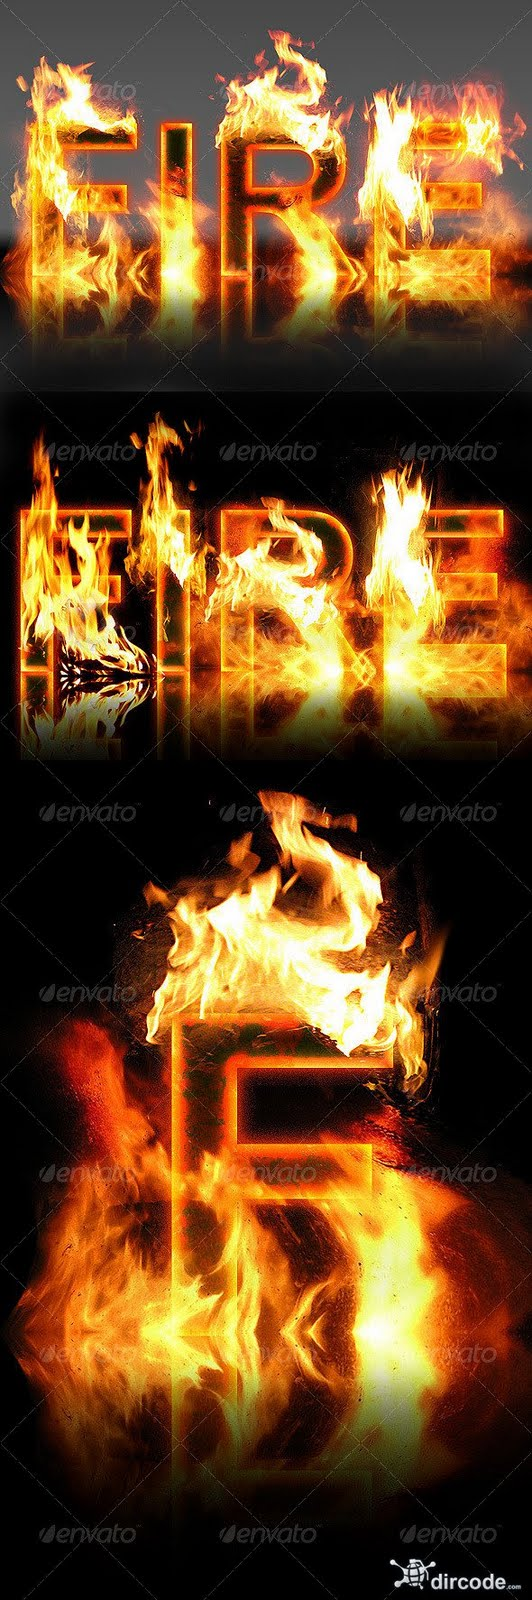 6 Real Fire Fonts Images